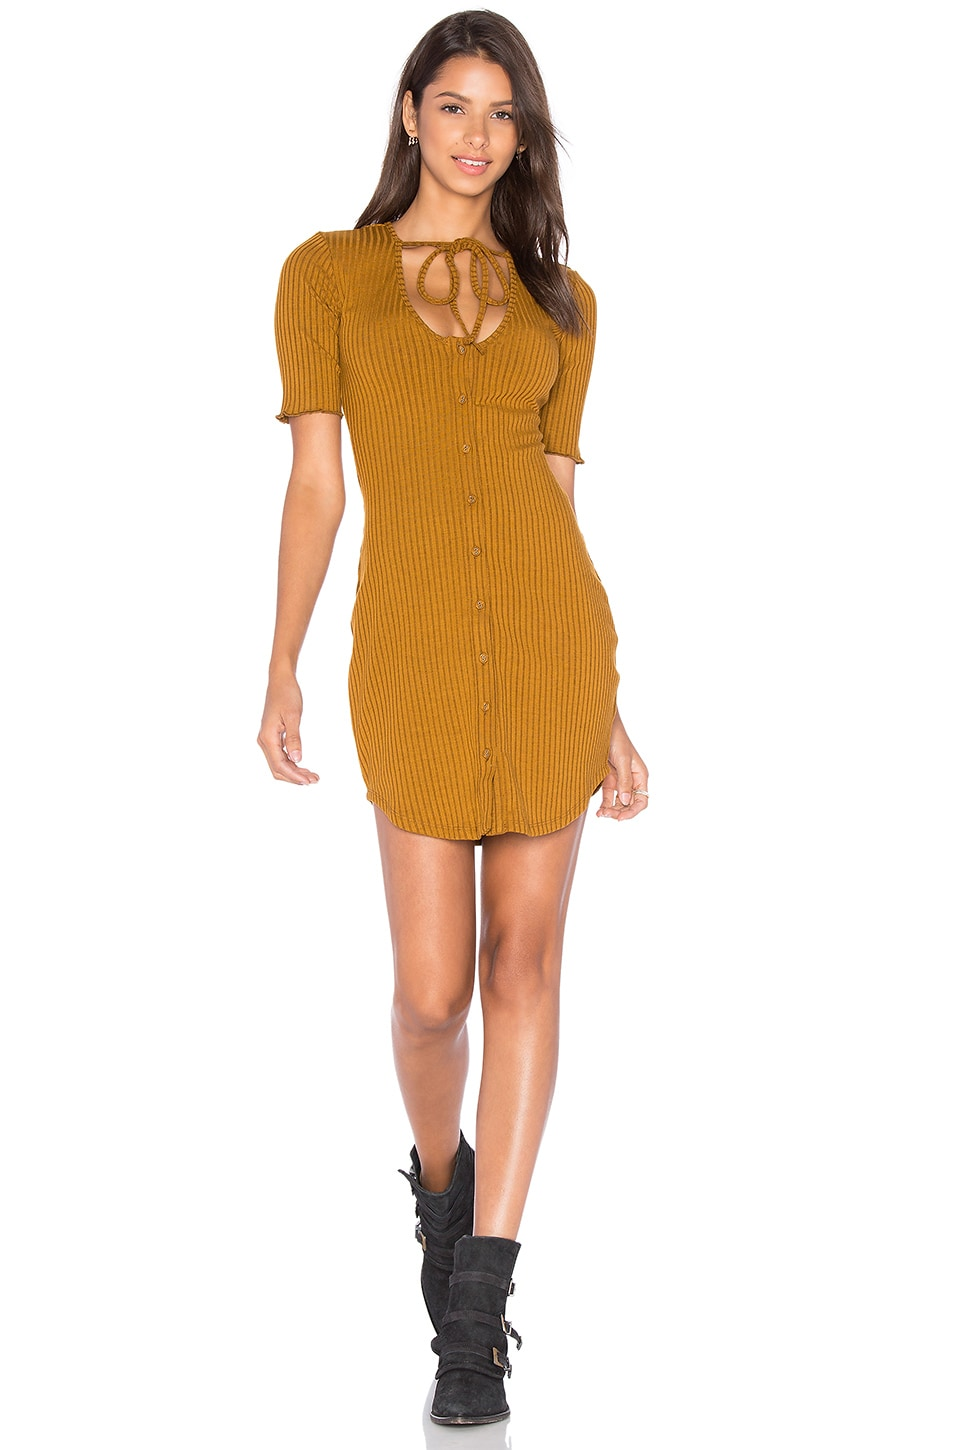 Privacy Please Prentiss Dress in Camel